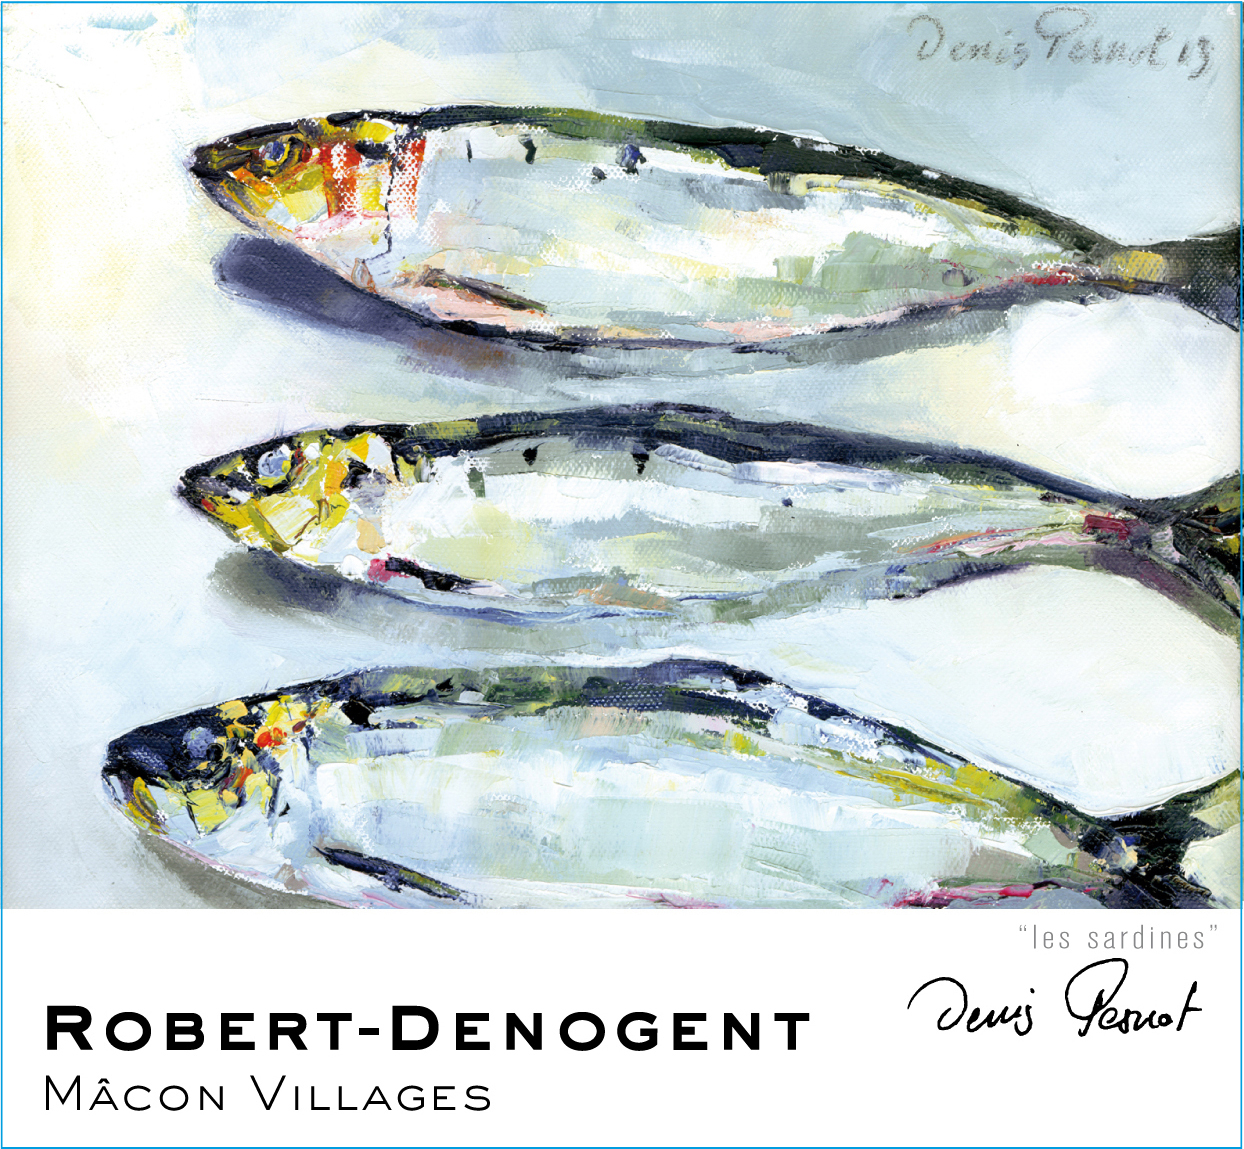 Robert-Denogent Macon-Villages Les Sardines